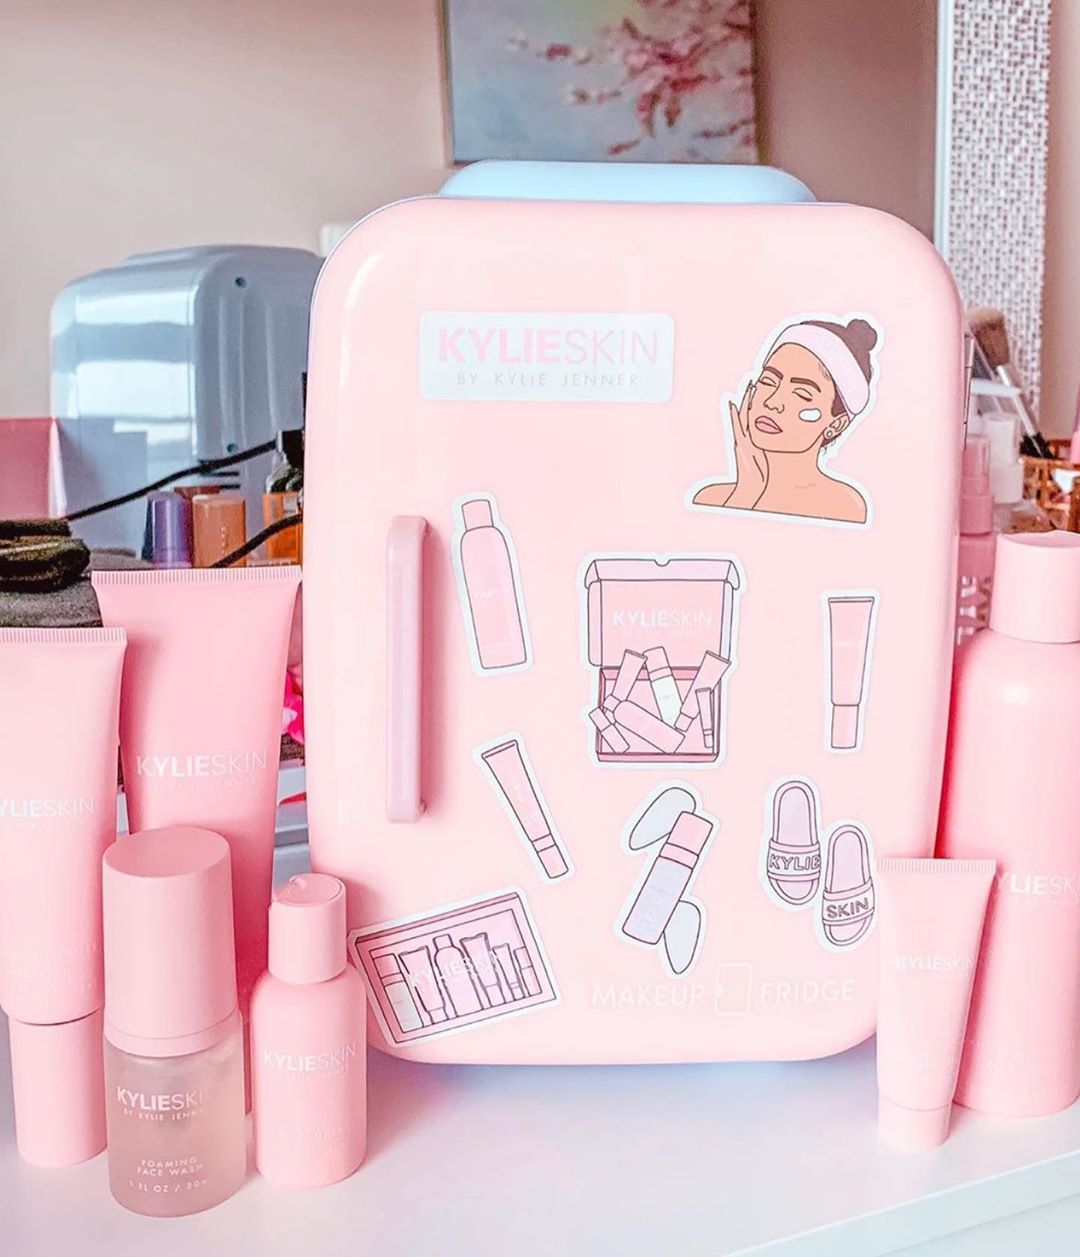 Don T Forget That You Can Get Free Kylieskin Stickers With All Orders On Kylieskin Com Thebeautynewby Beauty Skin Care Body Skin Care Skin Care Essentials